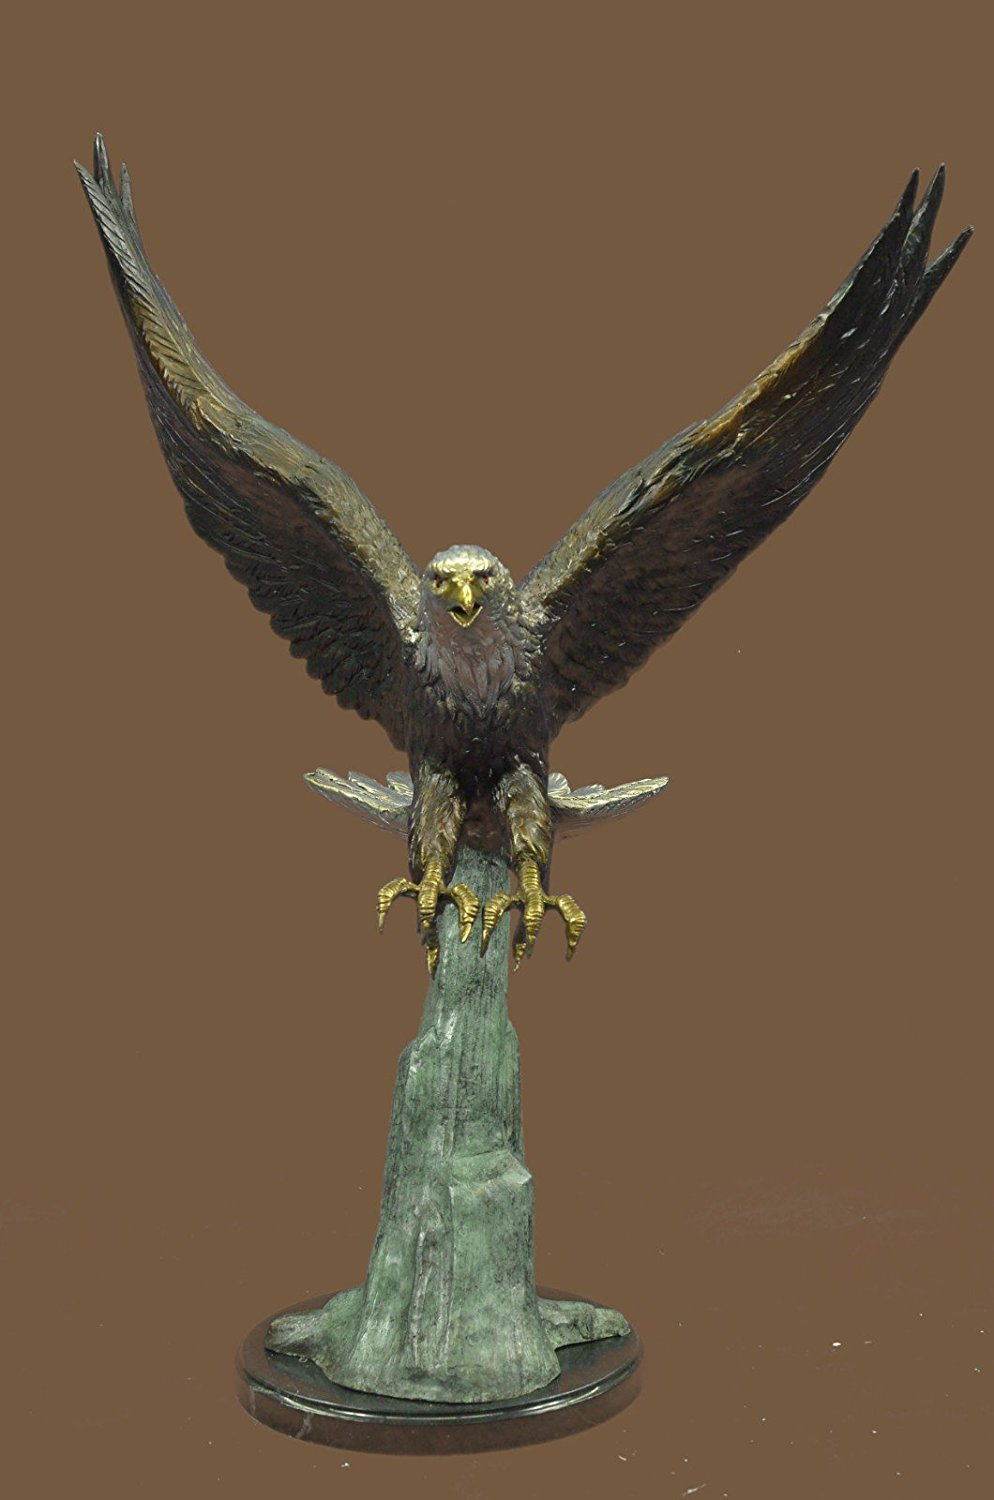 ...Handmade...European Bronze Sculpture Signed Moigniez Large American Eagle Swoops To Prey Marble (1X-57596) Bronze Sculpture Statues Figurine Nude Office & Home Décor Collectibles Sale Deal Gifts